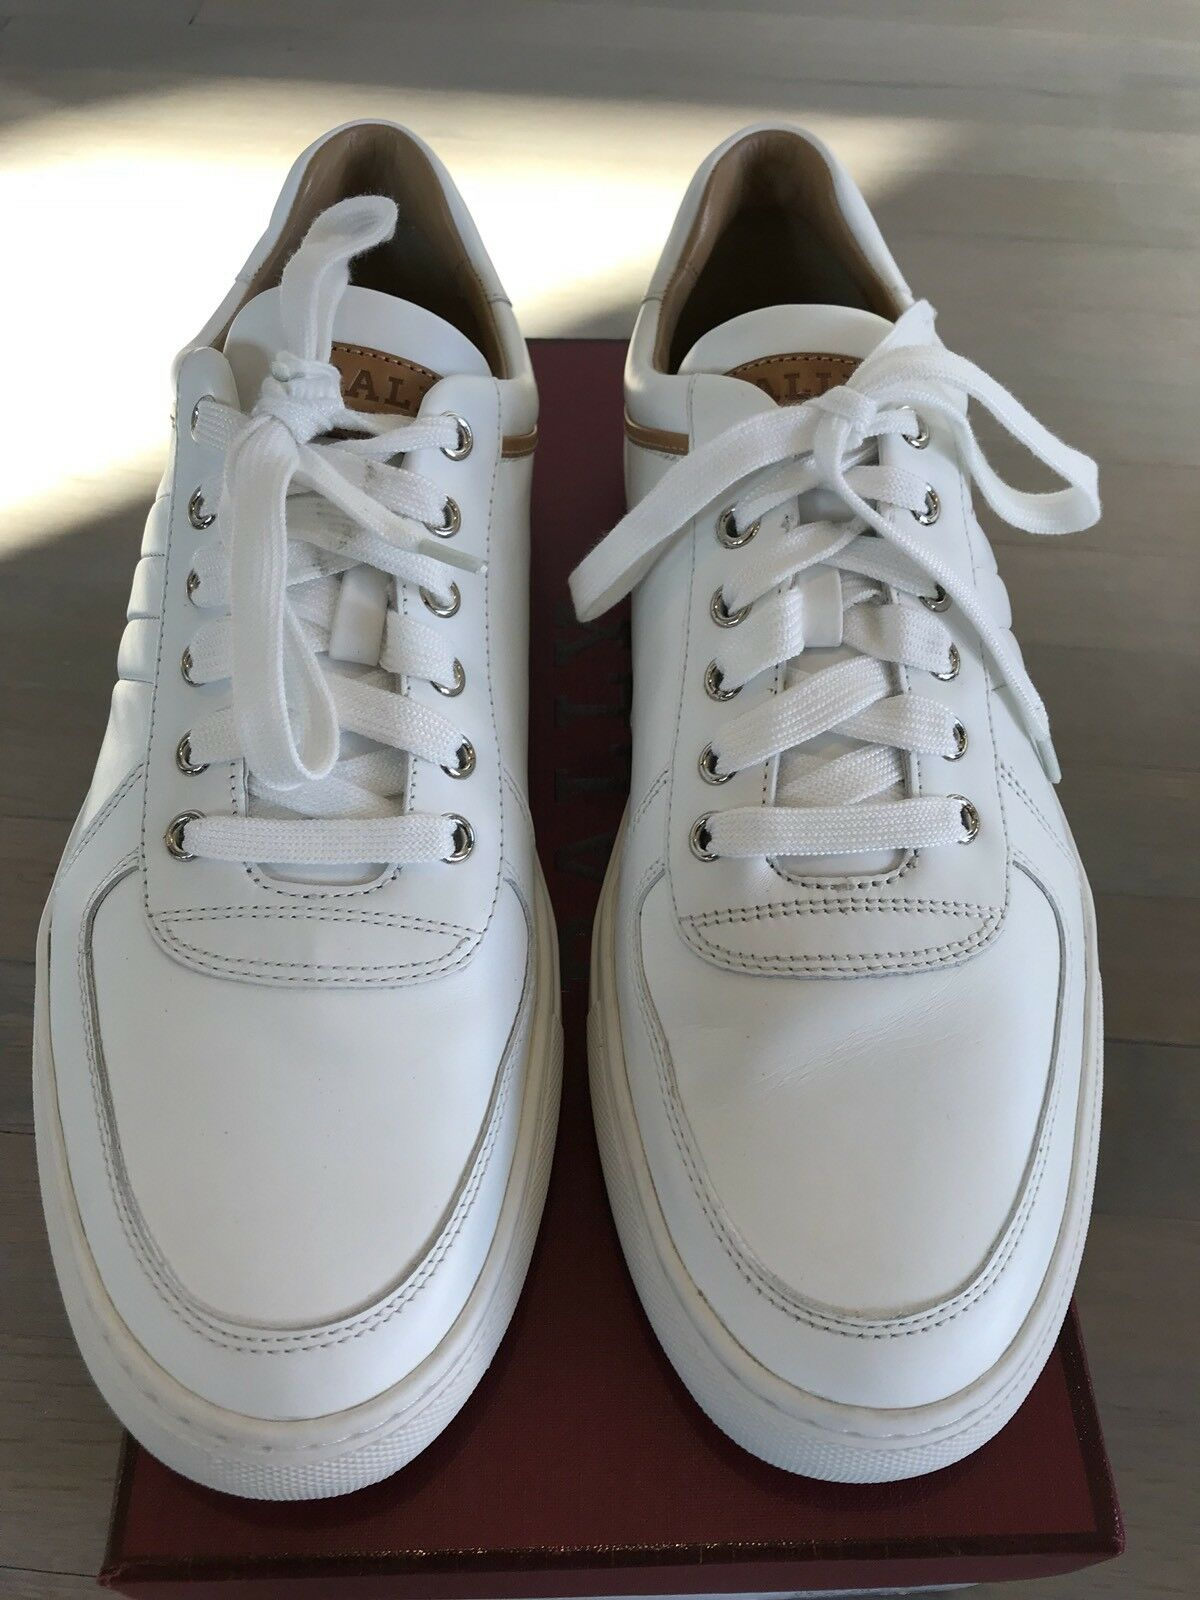 600  Bally Heider White Pelle    size US 10 4c5903